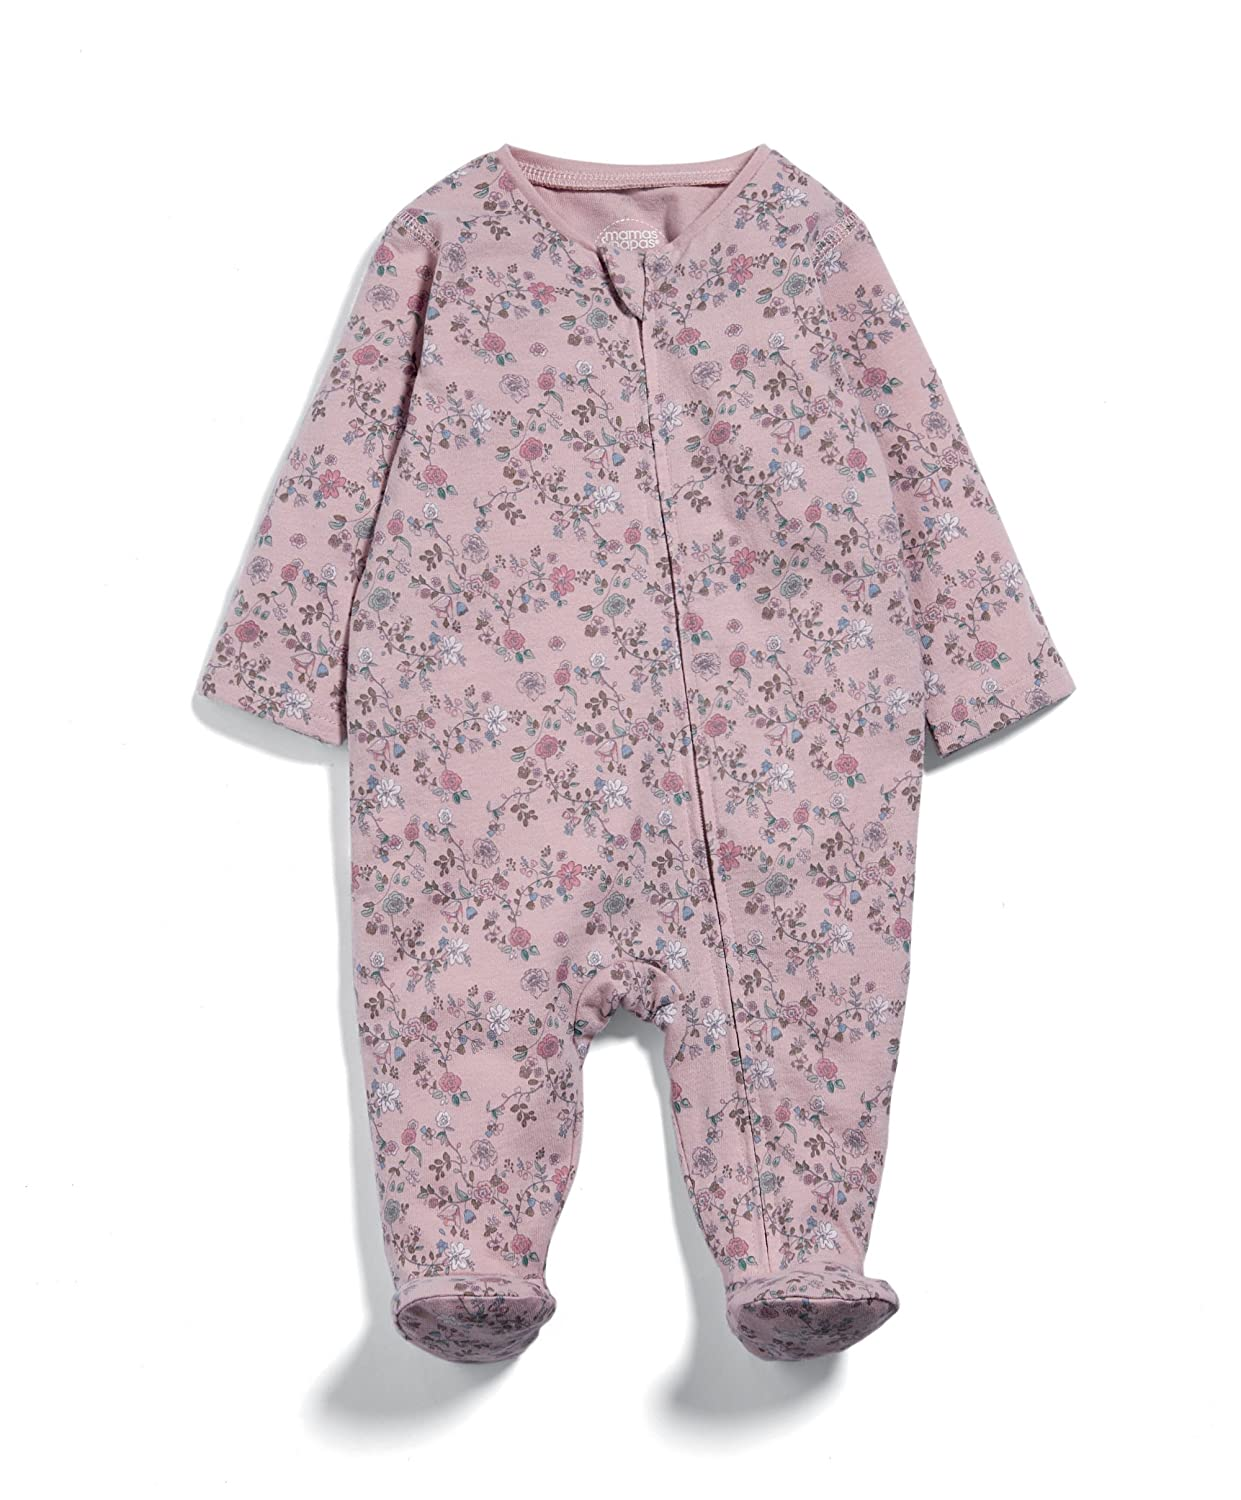 Mamas & Papas Baby Girls' Floral Zip All in One Sleepsuits Pink 0-3 Months Mamas and Papas S94FCN6B2